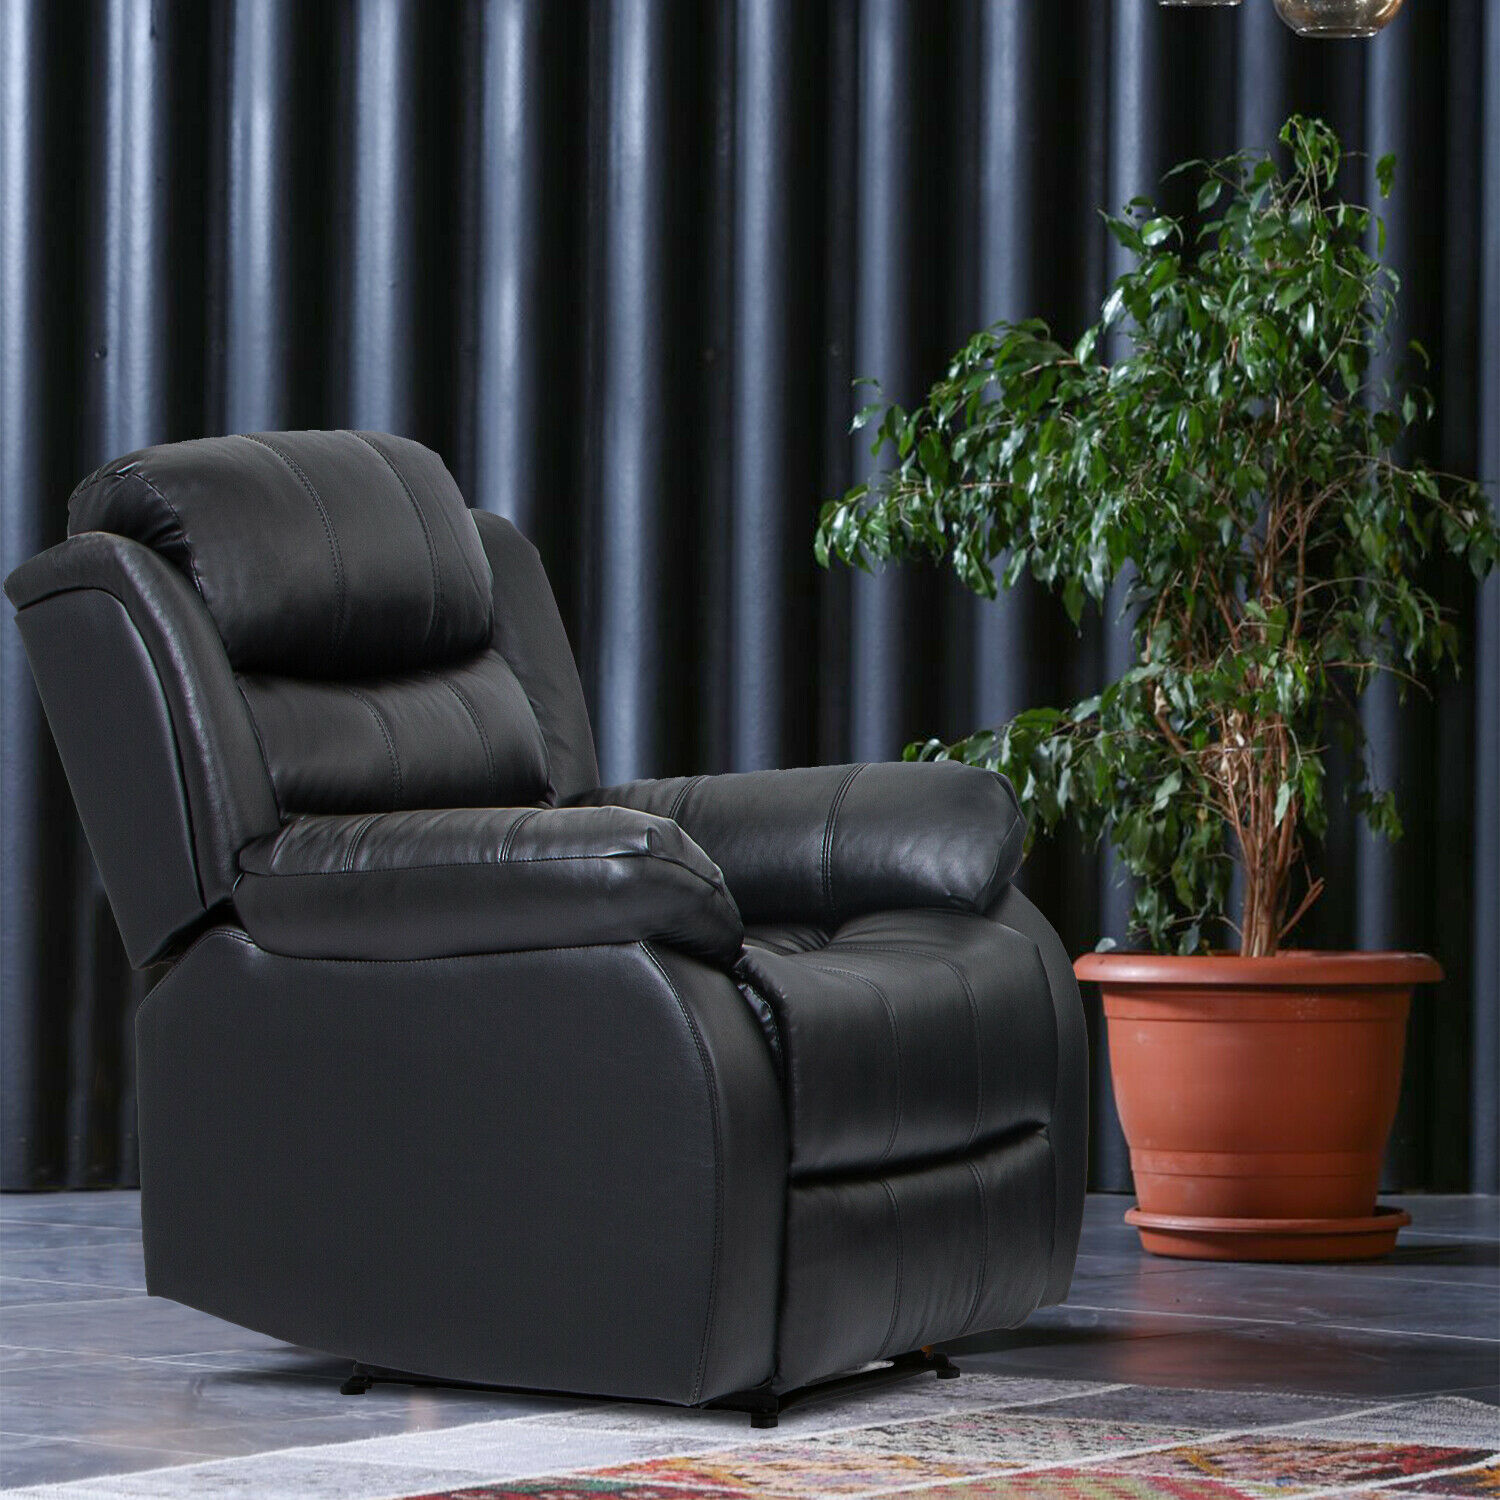 Recliner Chair Reclining  Sofa Couch Sofa Leather Home Theater Seating Manual Furniture